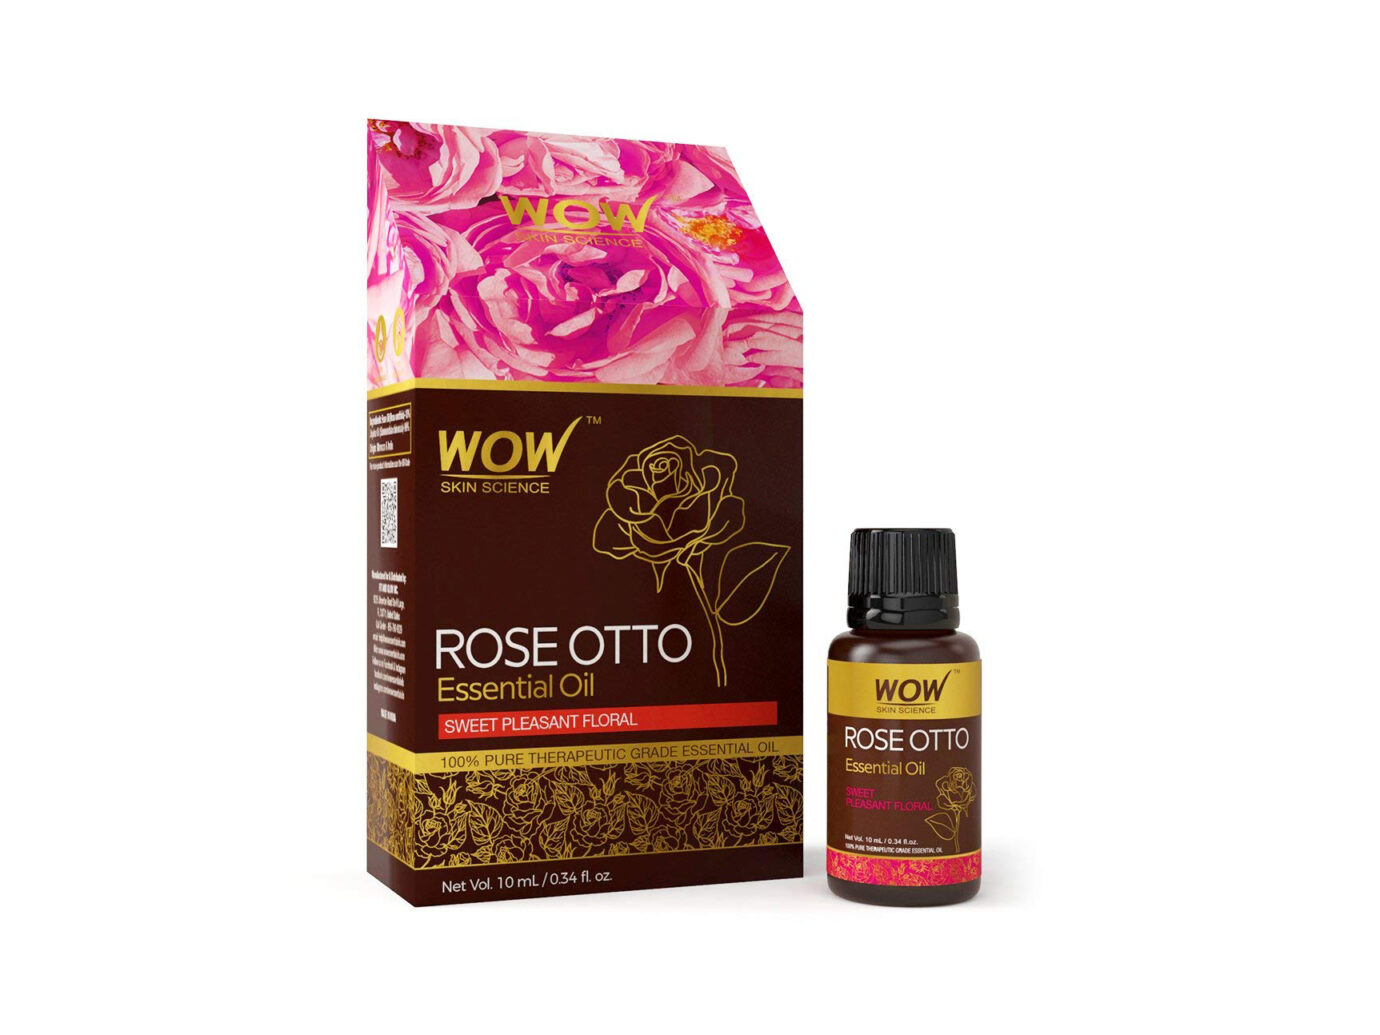 WOW Rose Otto Essential Oil